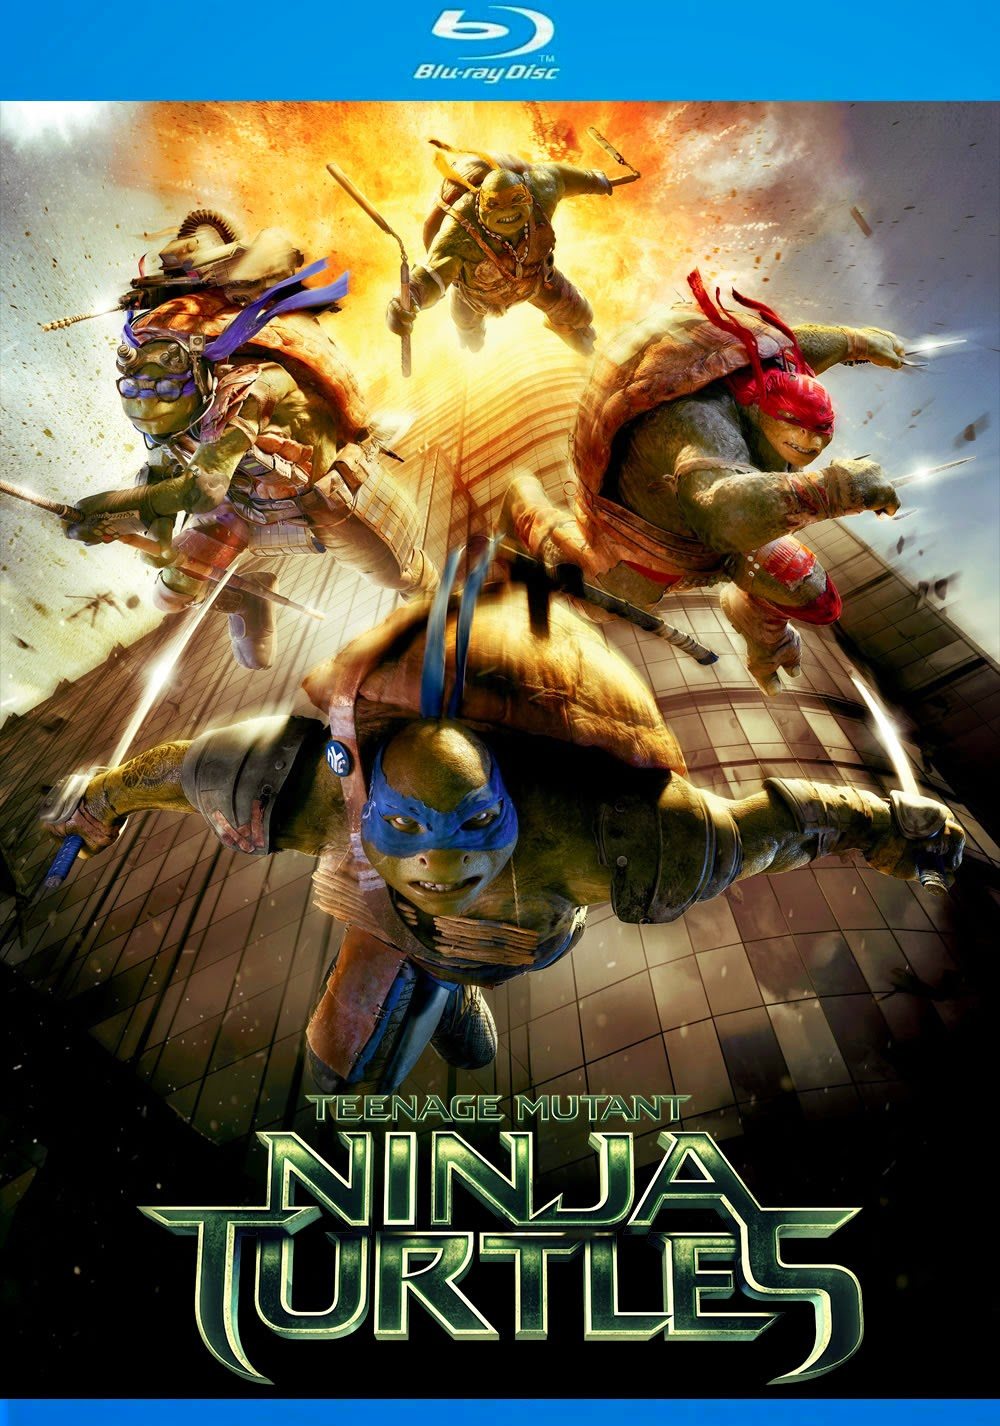 Download As Tartarugas Ninjas (2014) - Dublado MP4 720p BDRip MEGA